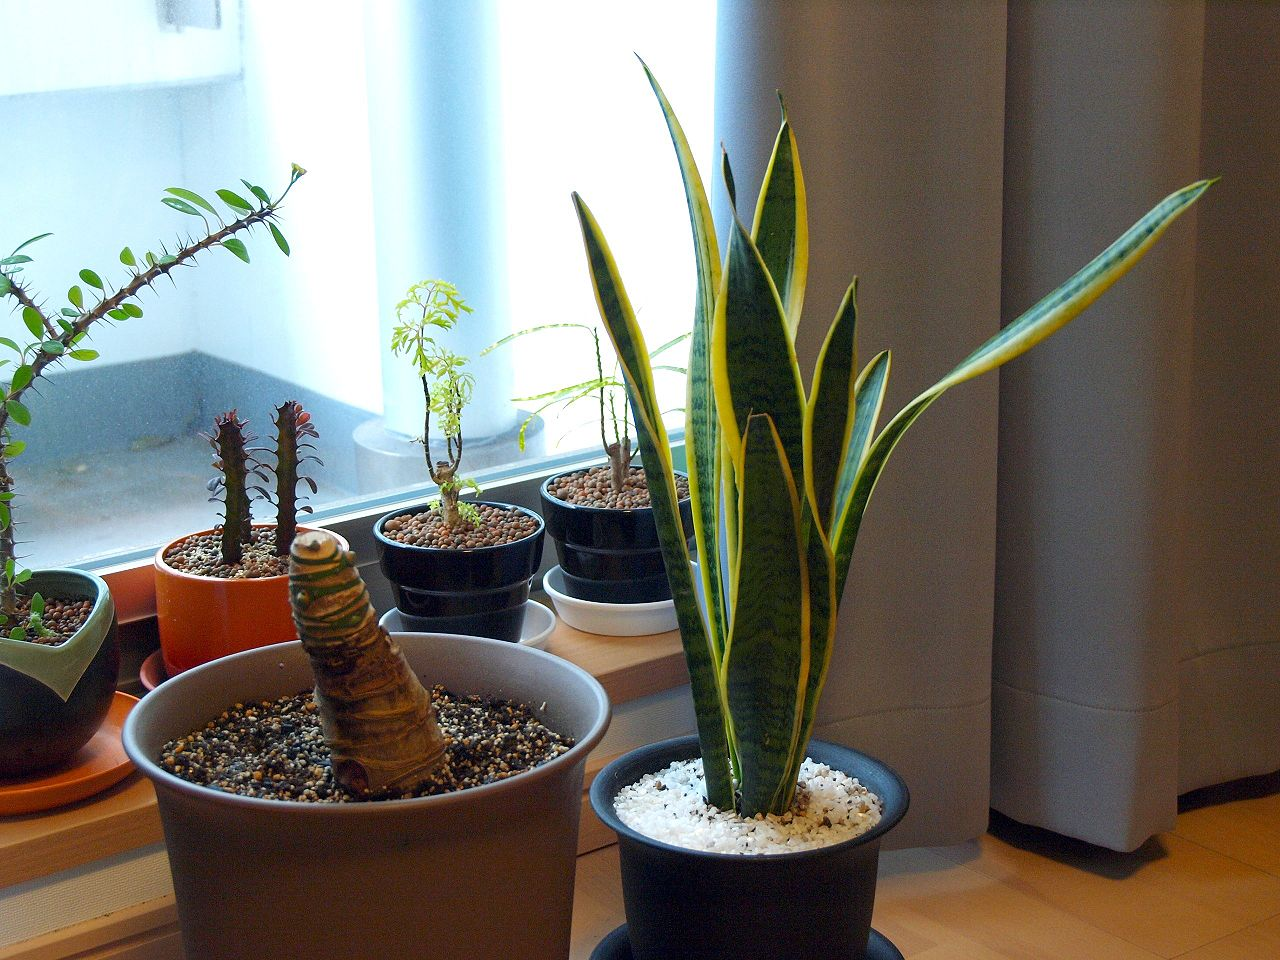 The 10 Best Houseplants for Improving the Air Quality In Your Home